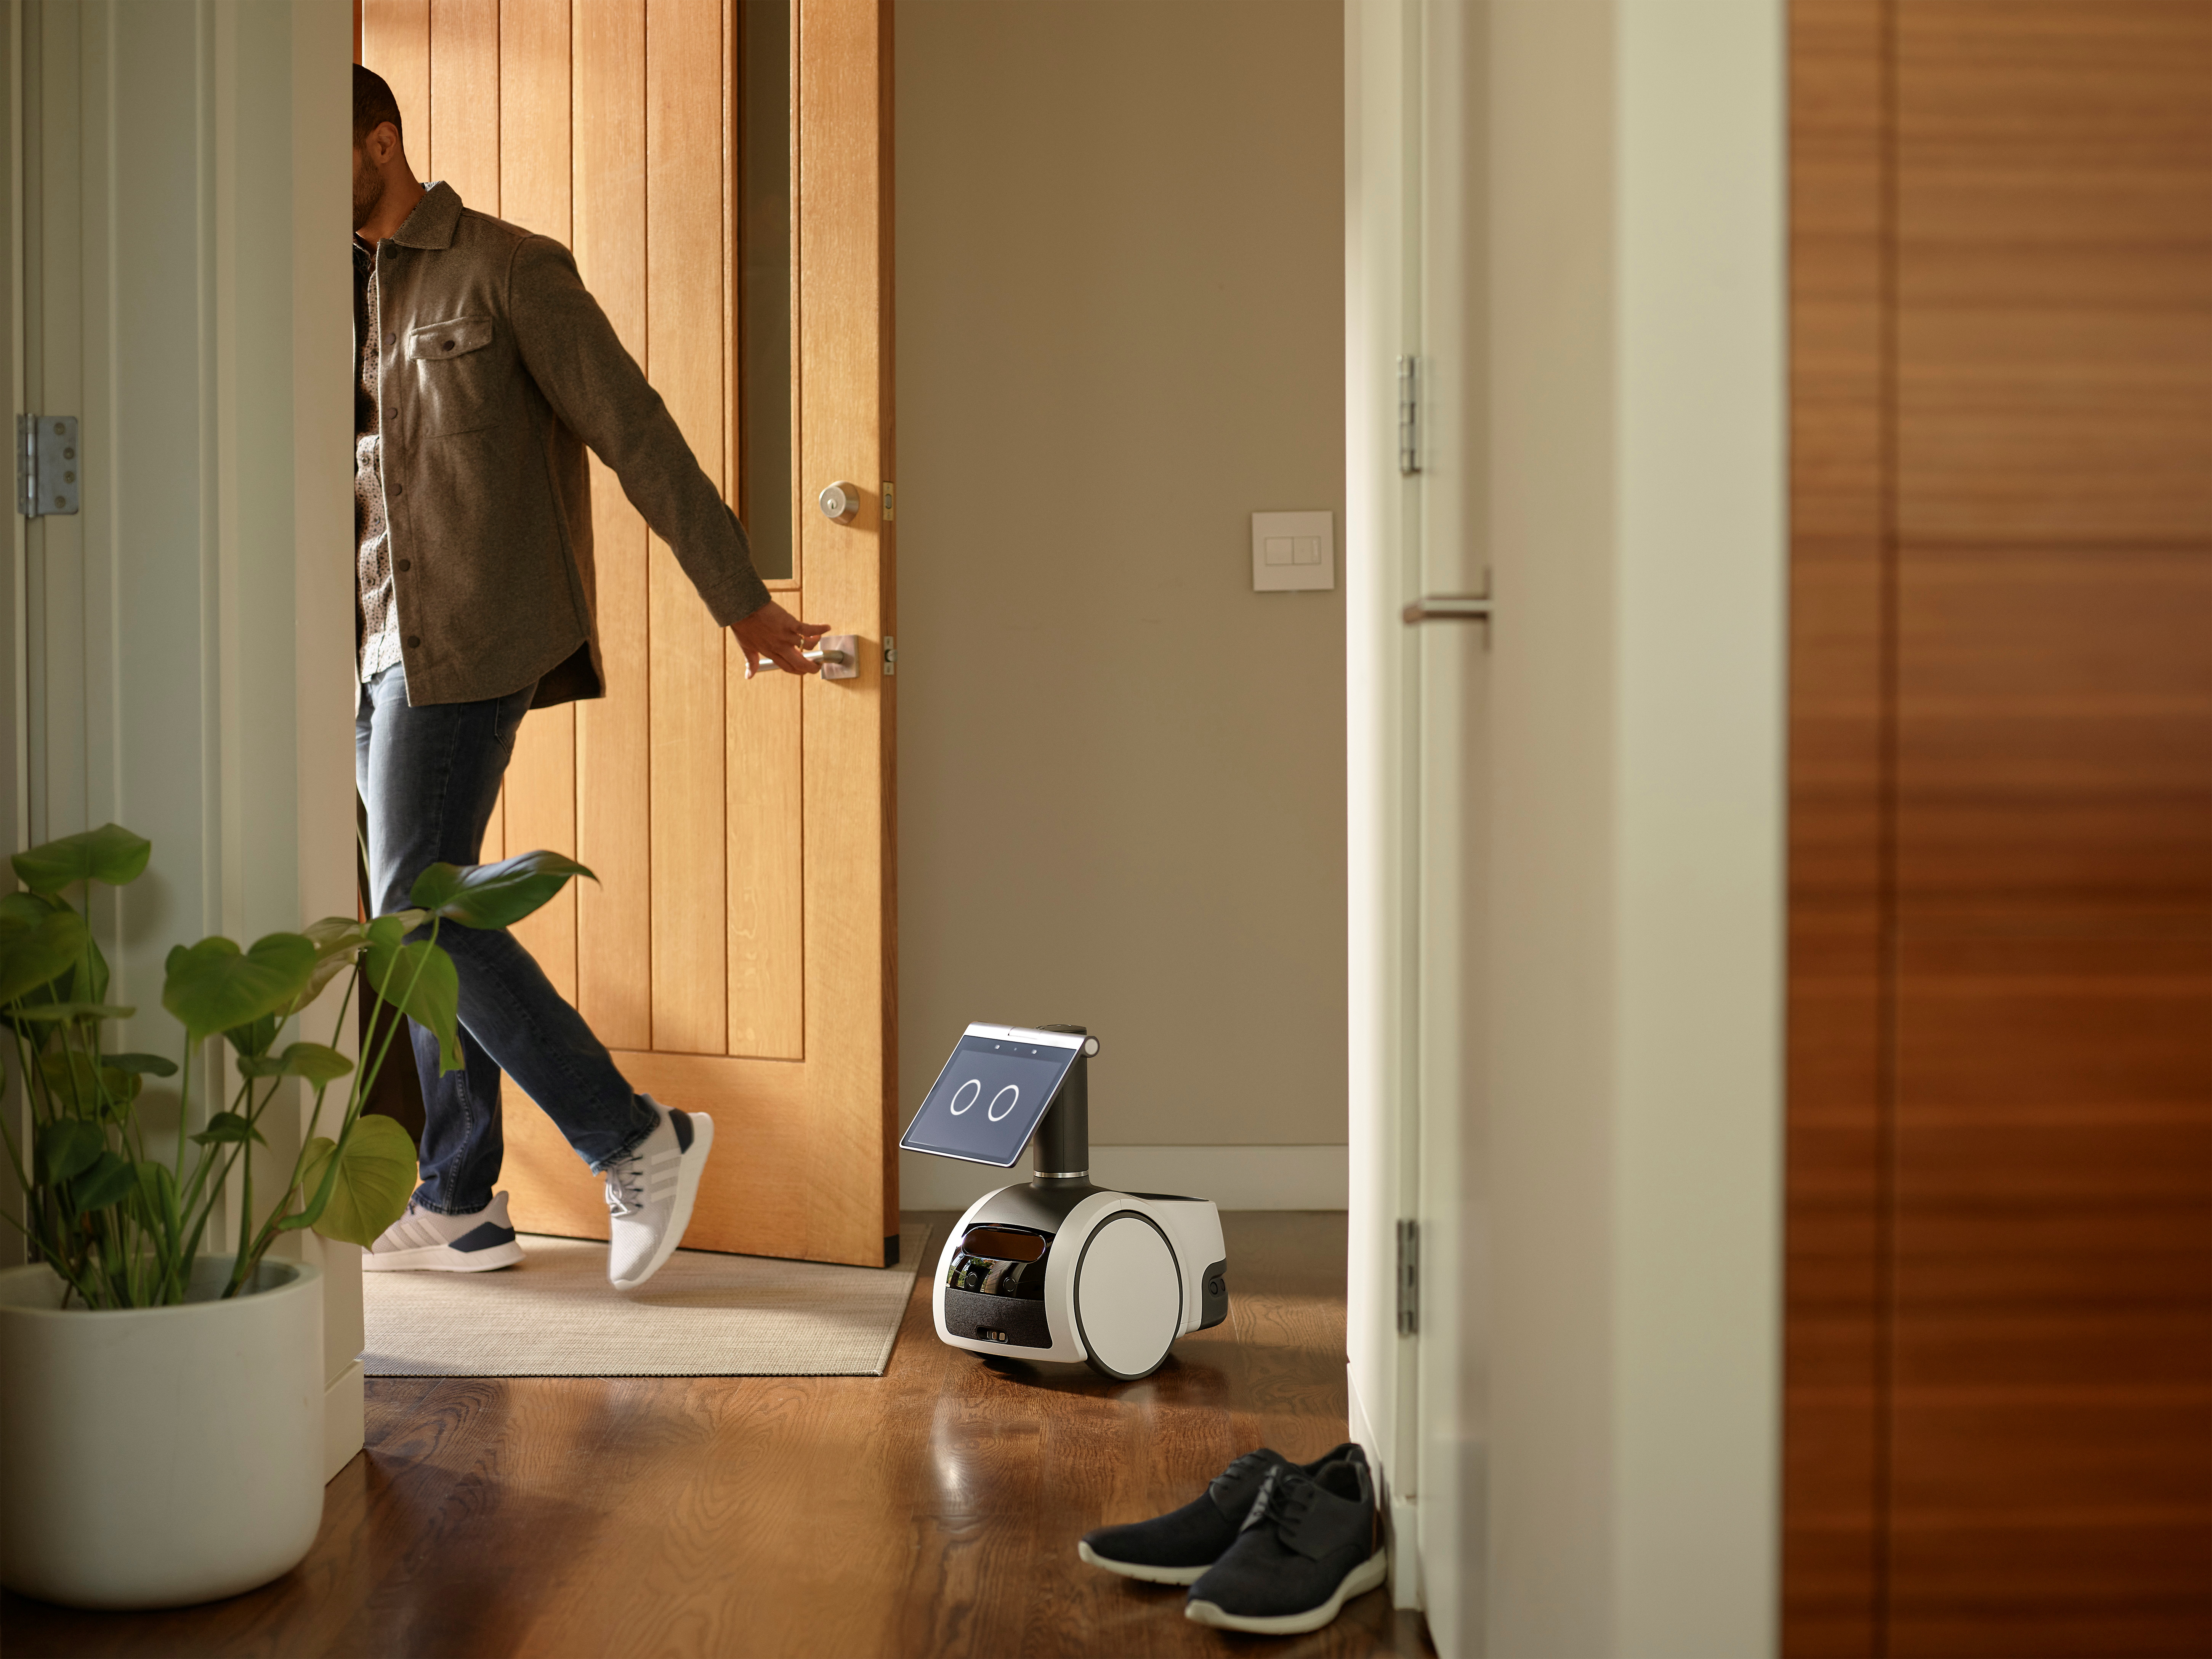 A roving, canine-like household robot called Astro is seen in an undated photograph provided by Amazon September 28, 2021. Amazon/Handout via REUTERS